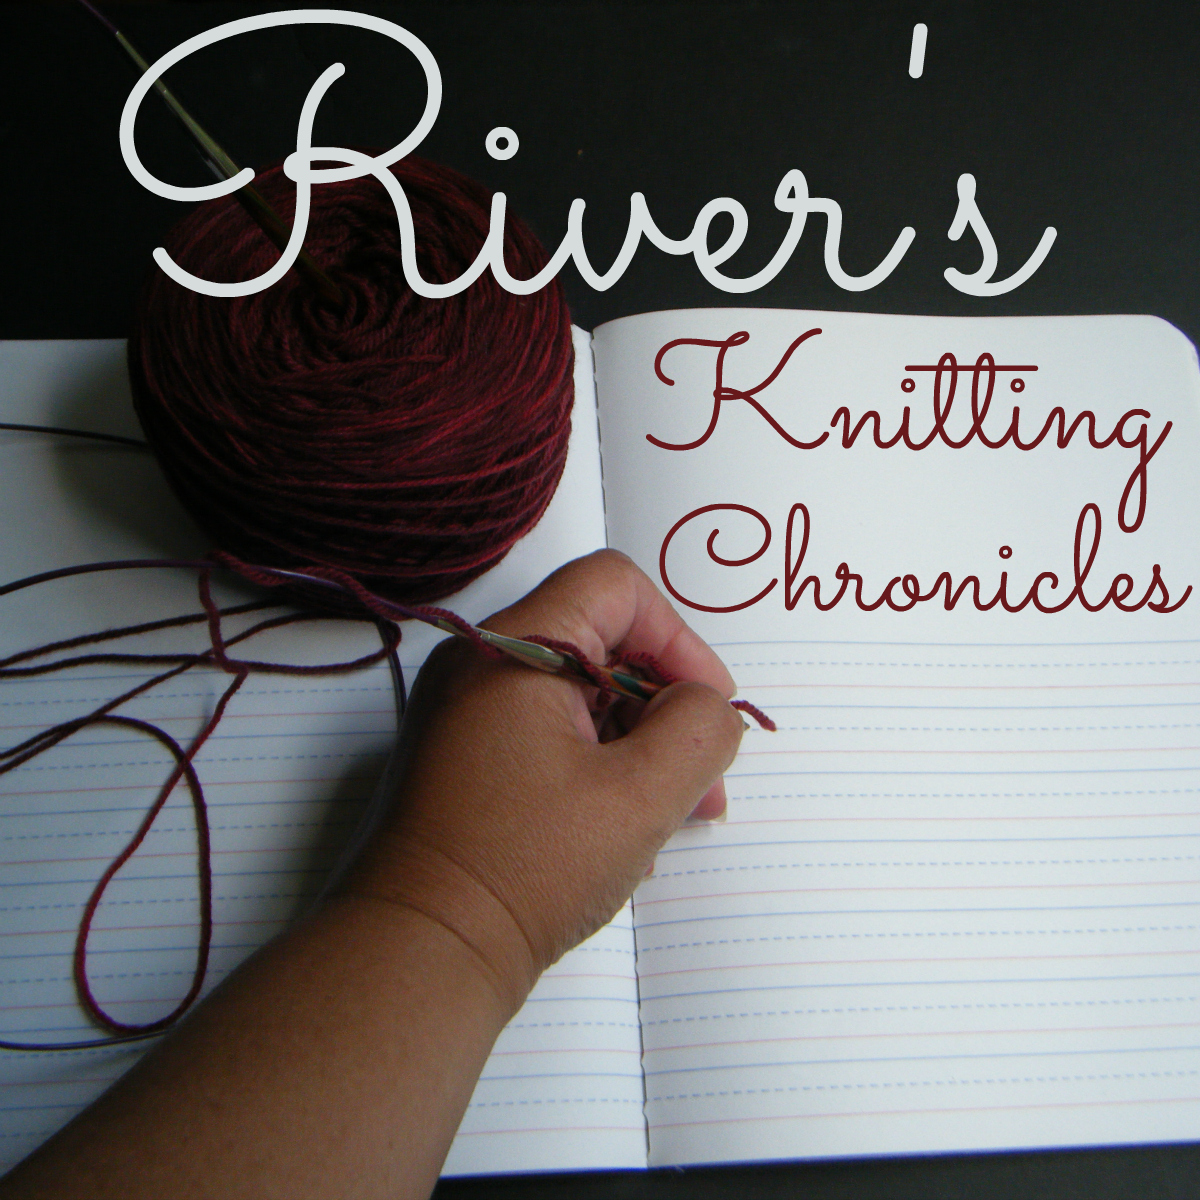 River's Knitting Chronicles